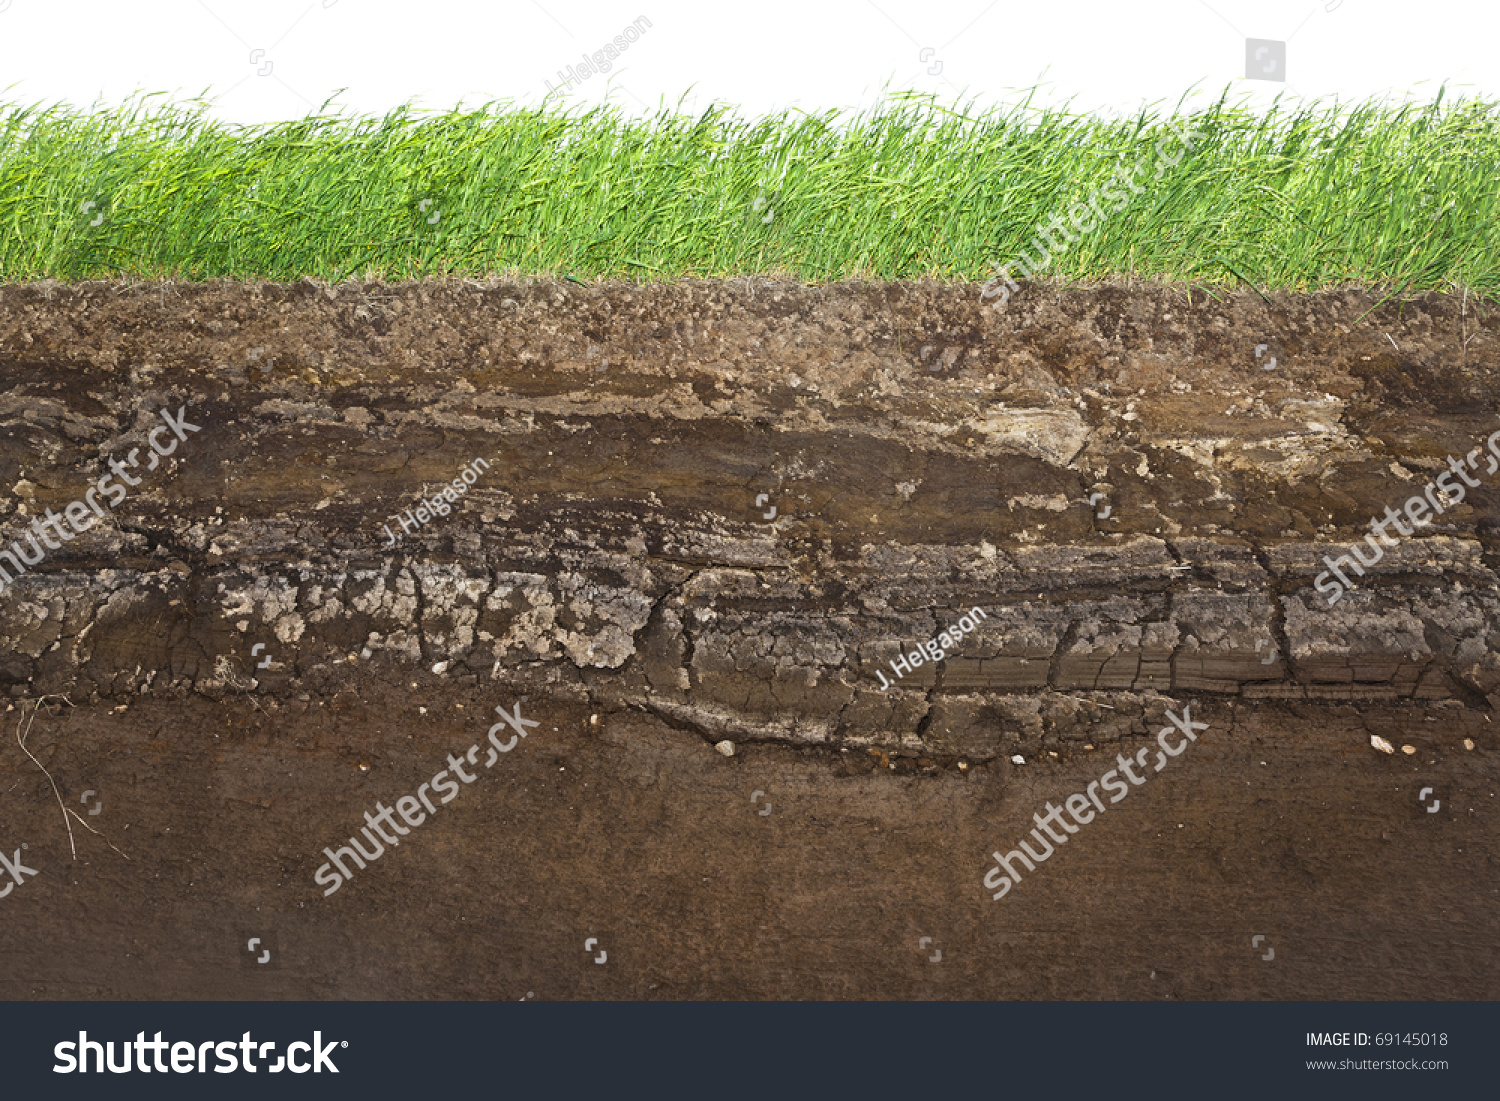 Cross section green grass underground soil stock photo for Soil and green